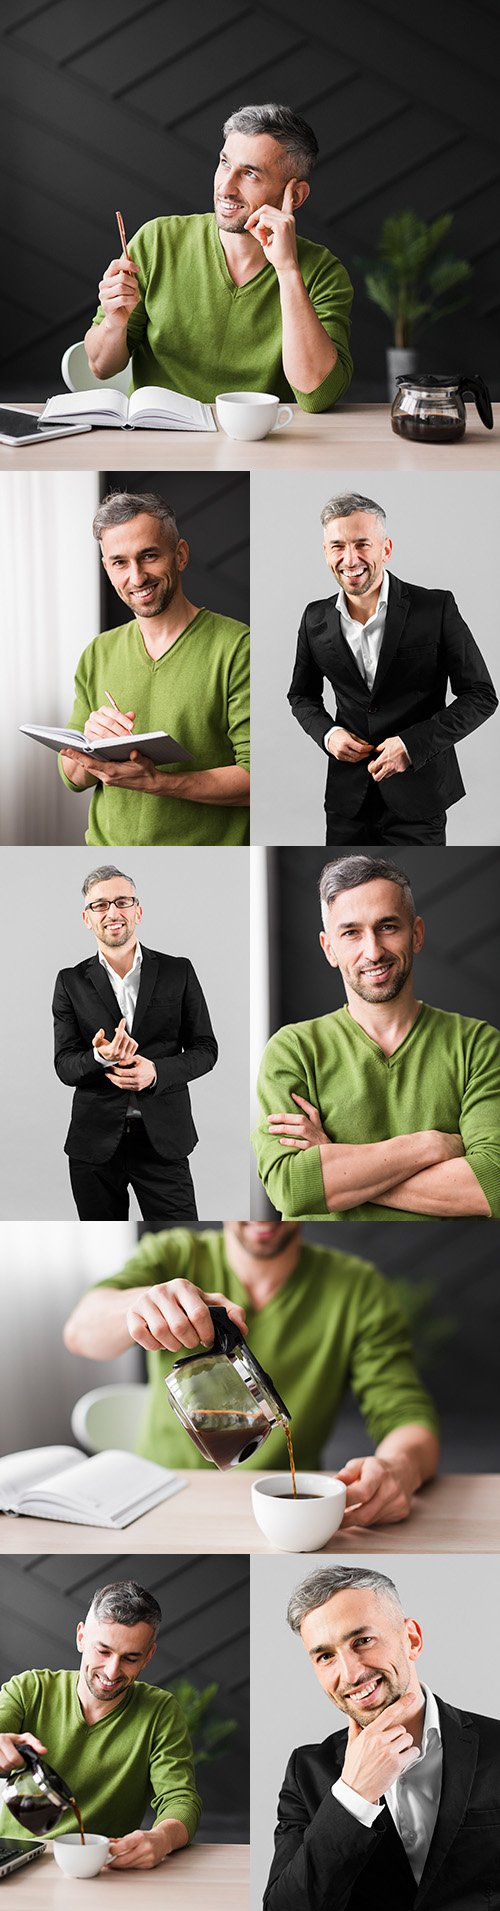 Young man in green shirt in workplace office